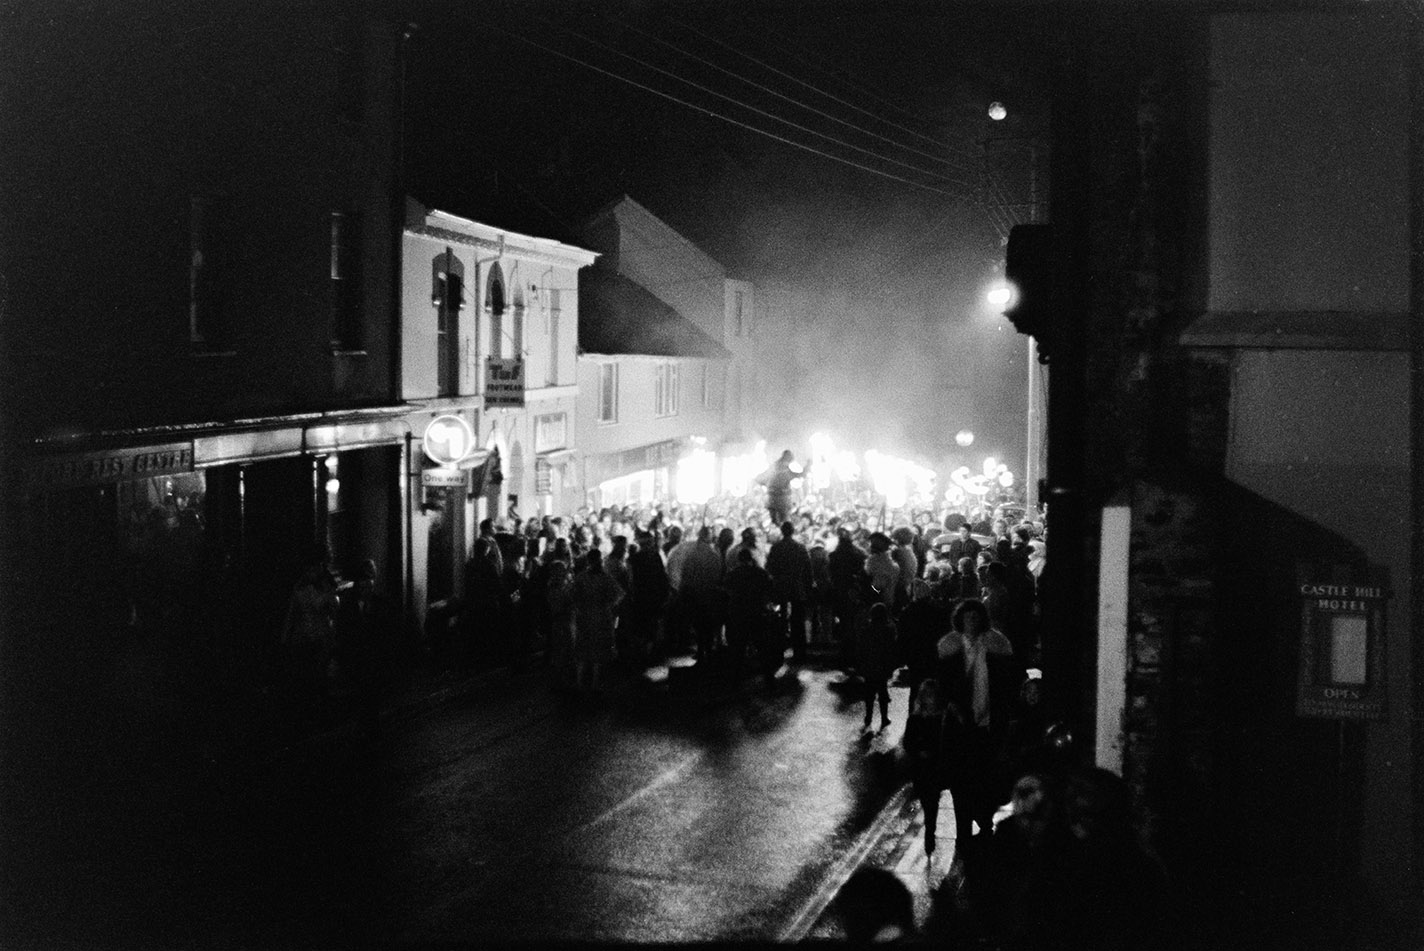 Wide angle street scene with torch bearers, Torrington, 2 November 1974